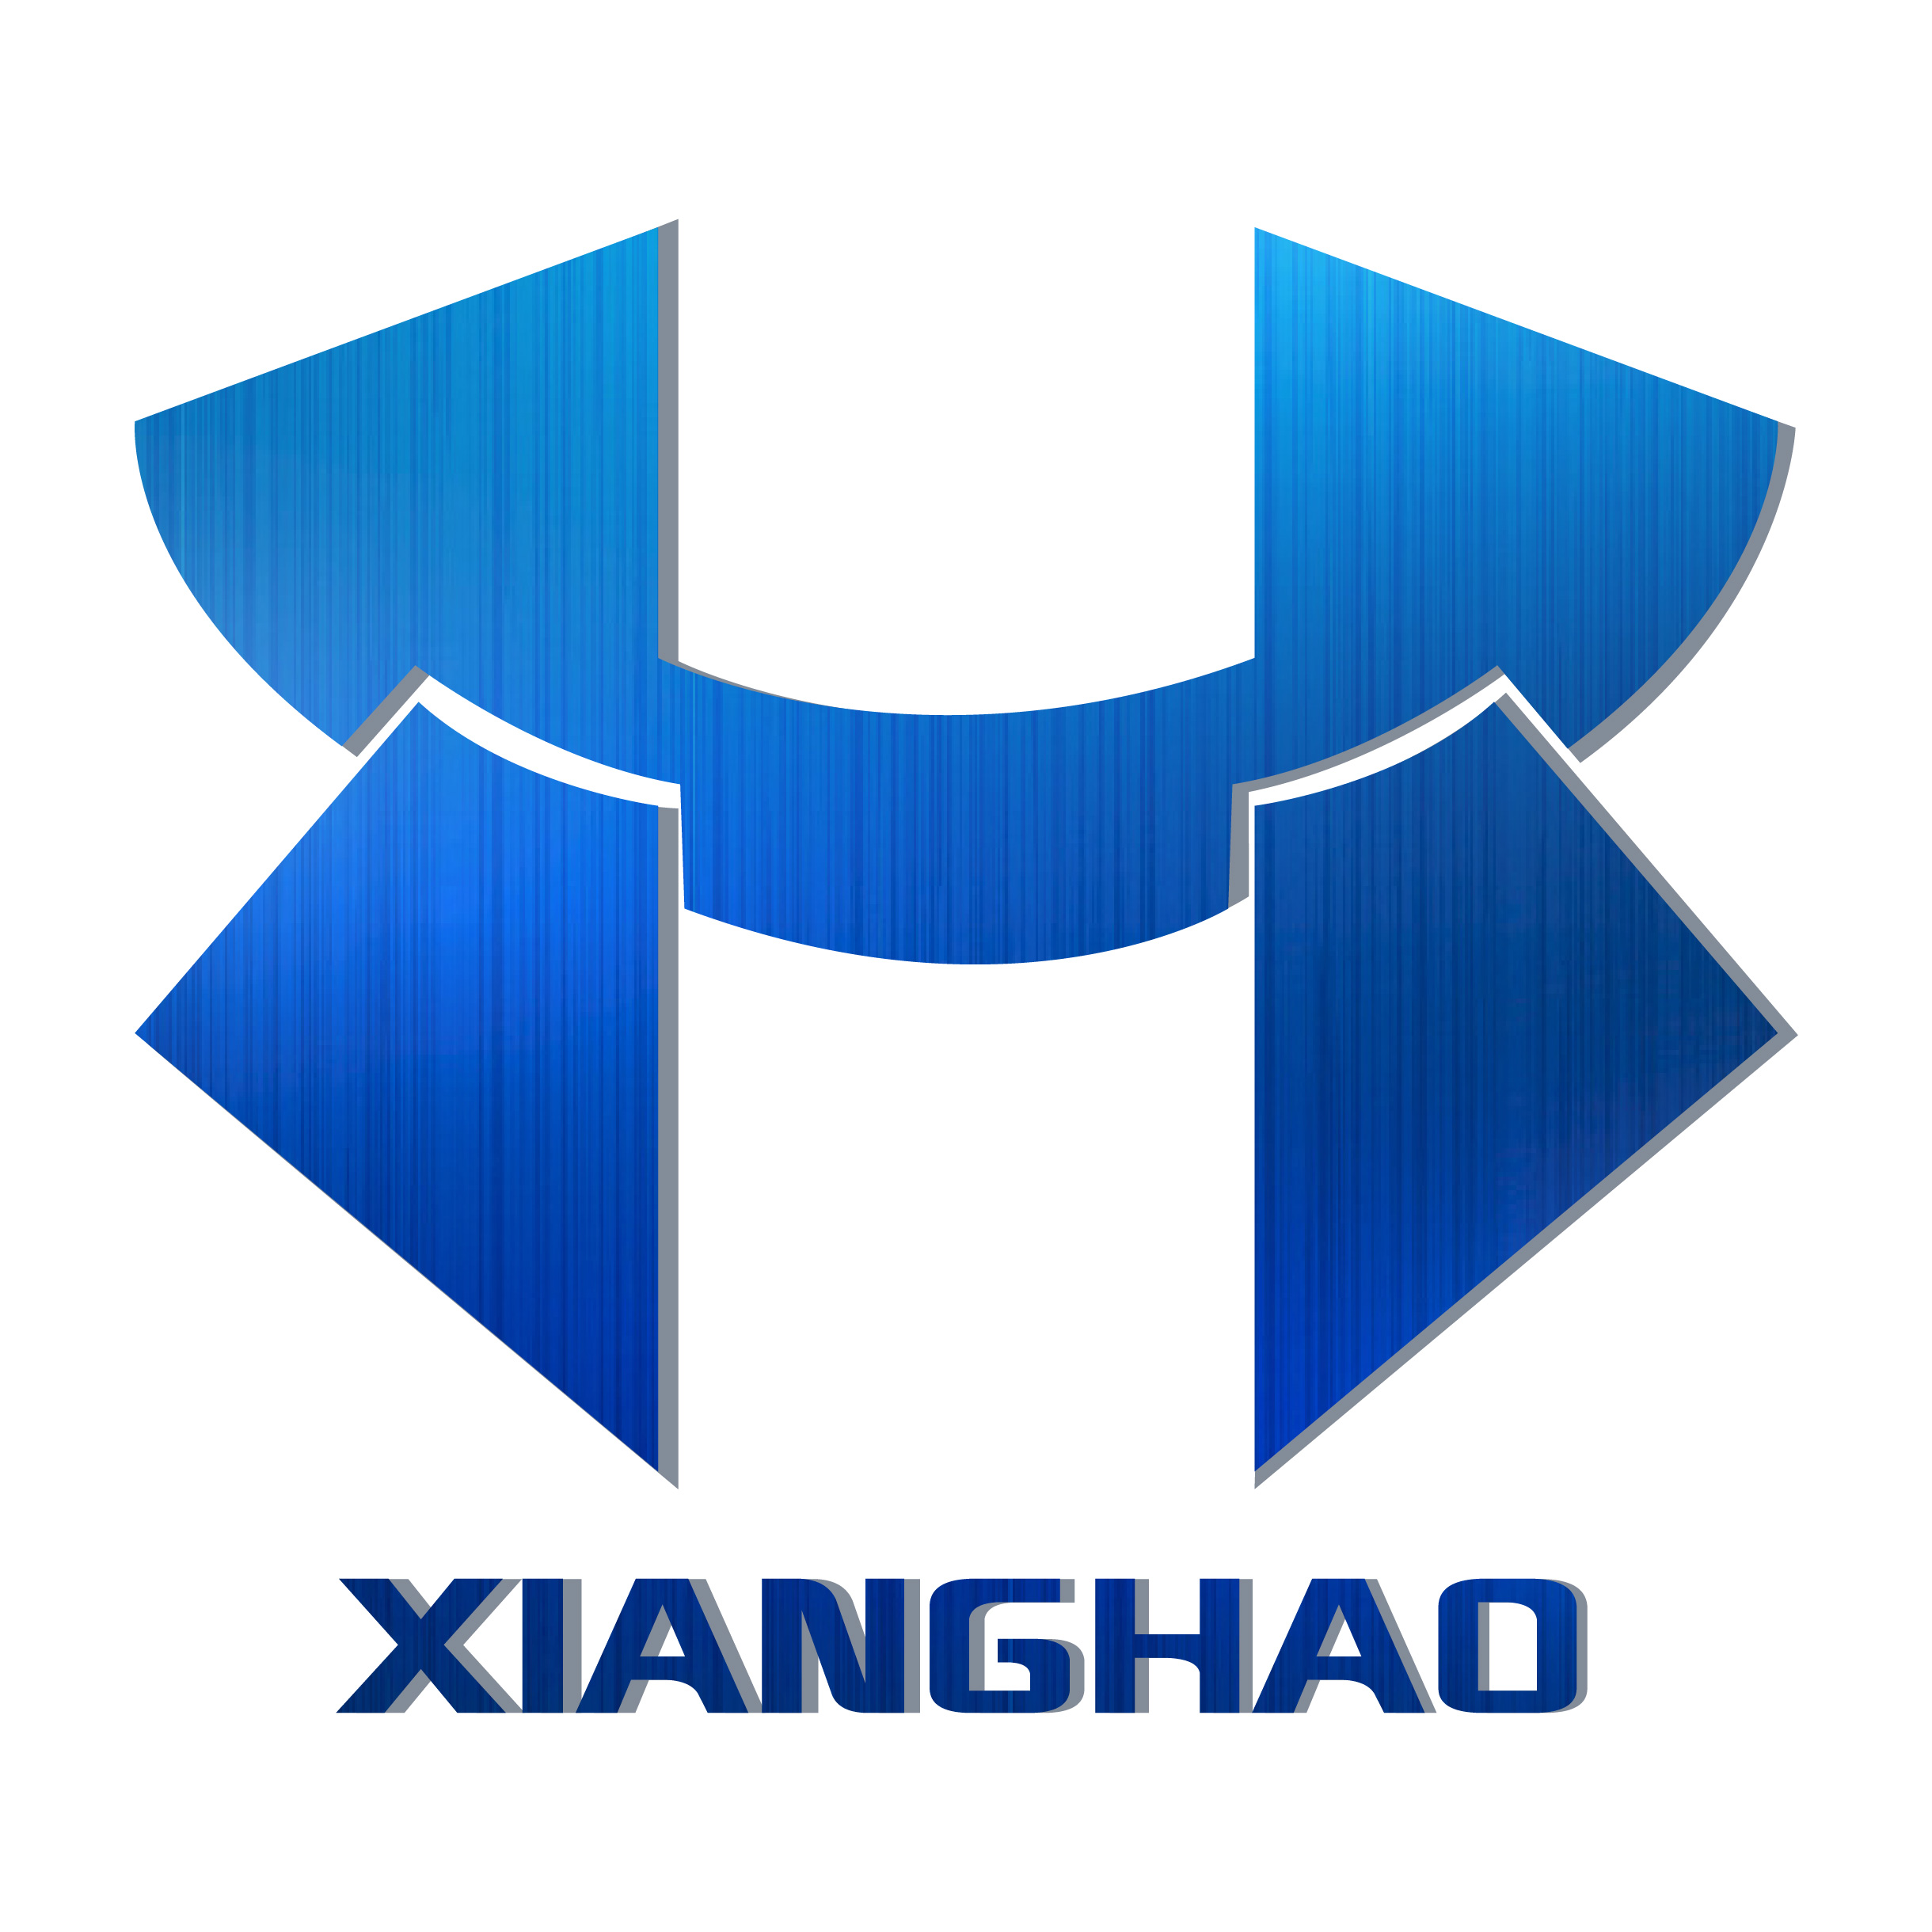 DONGYANG XIANGHAO BAGS & LUGGAGES COMPANY LIMITED